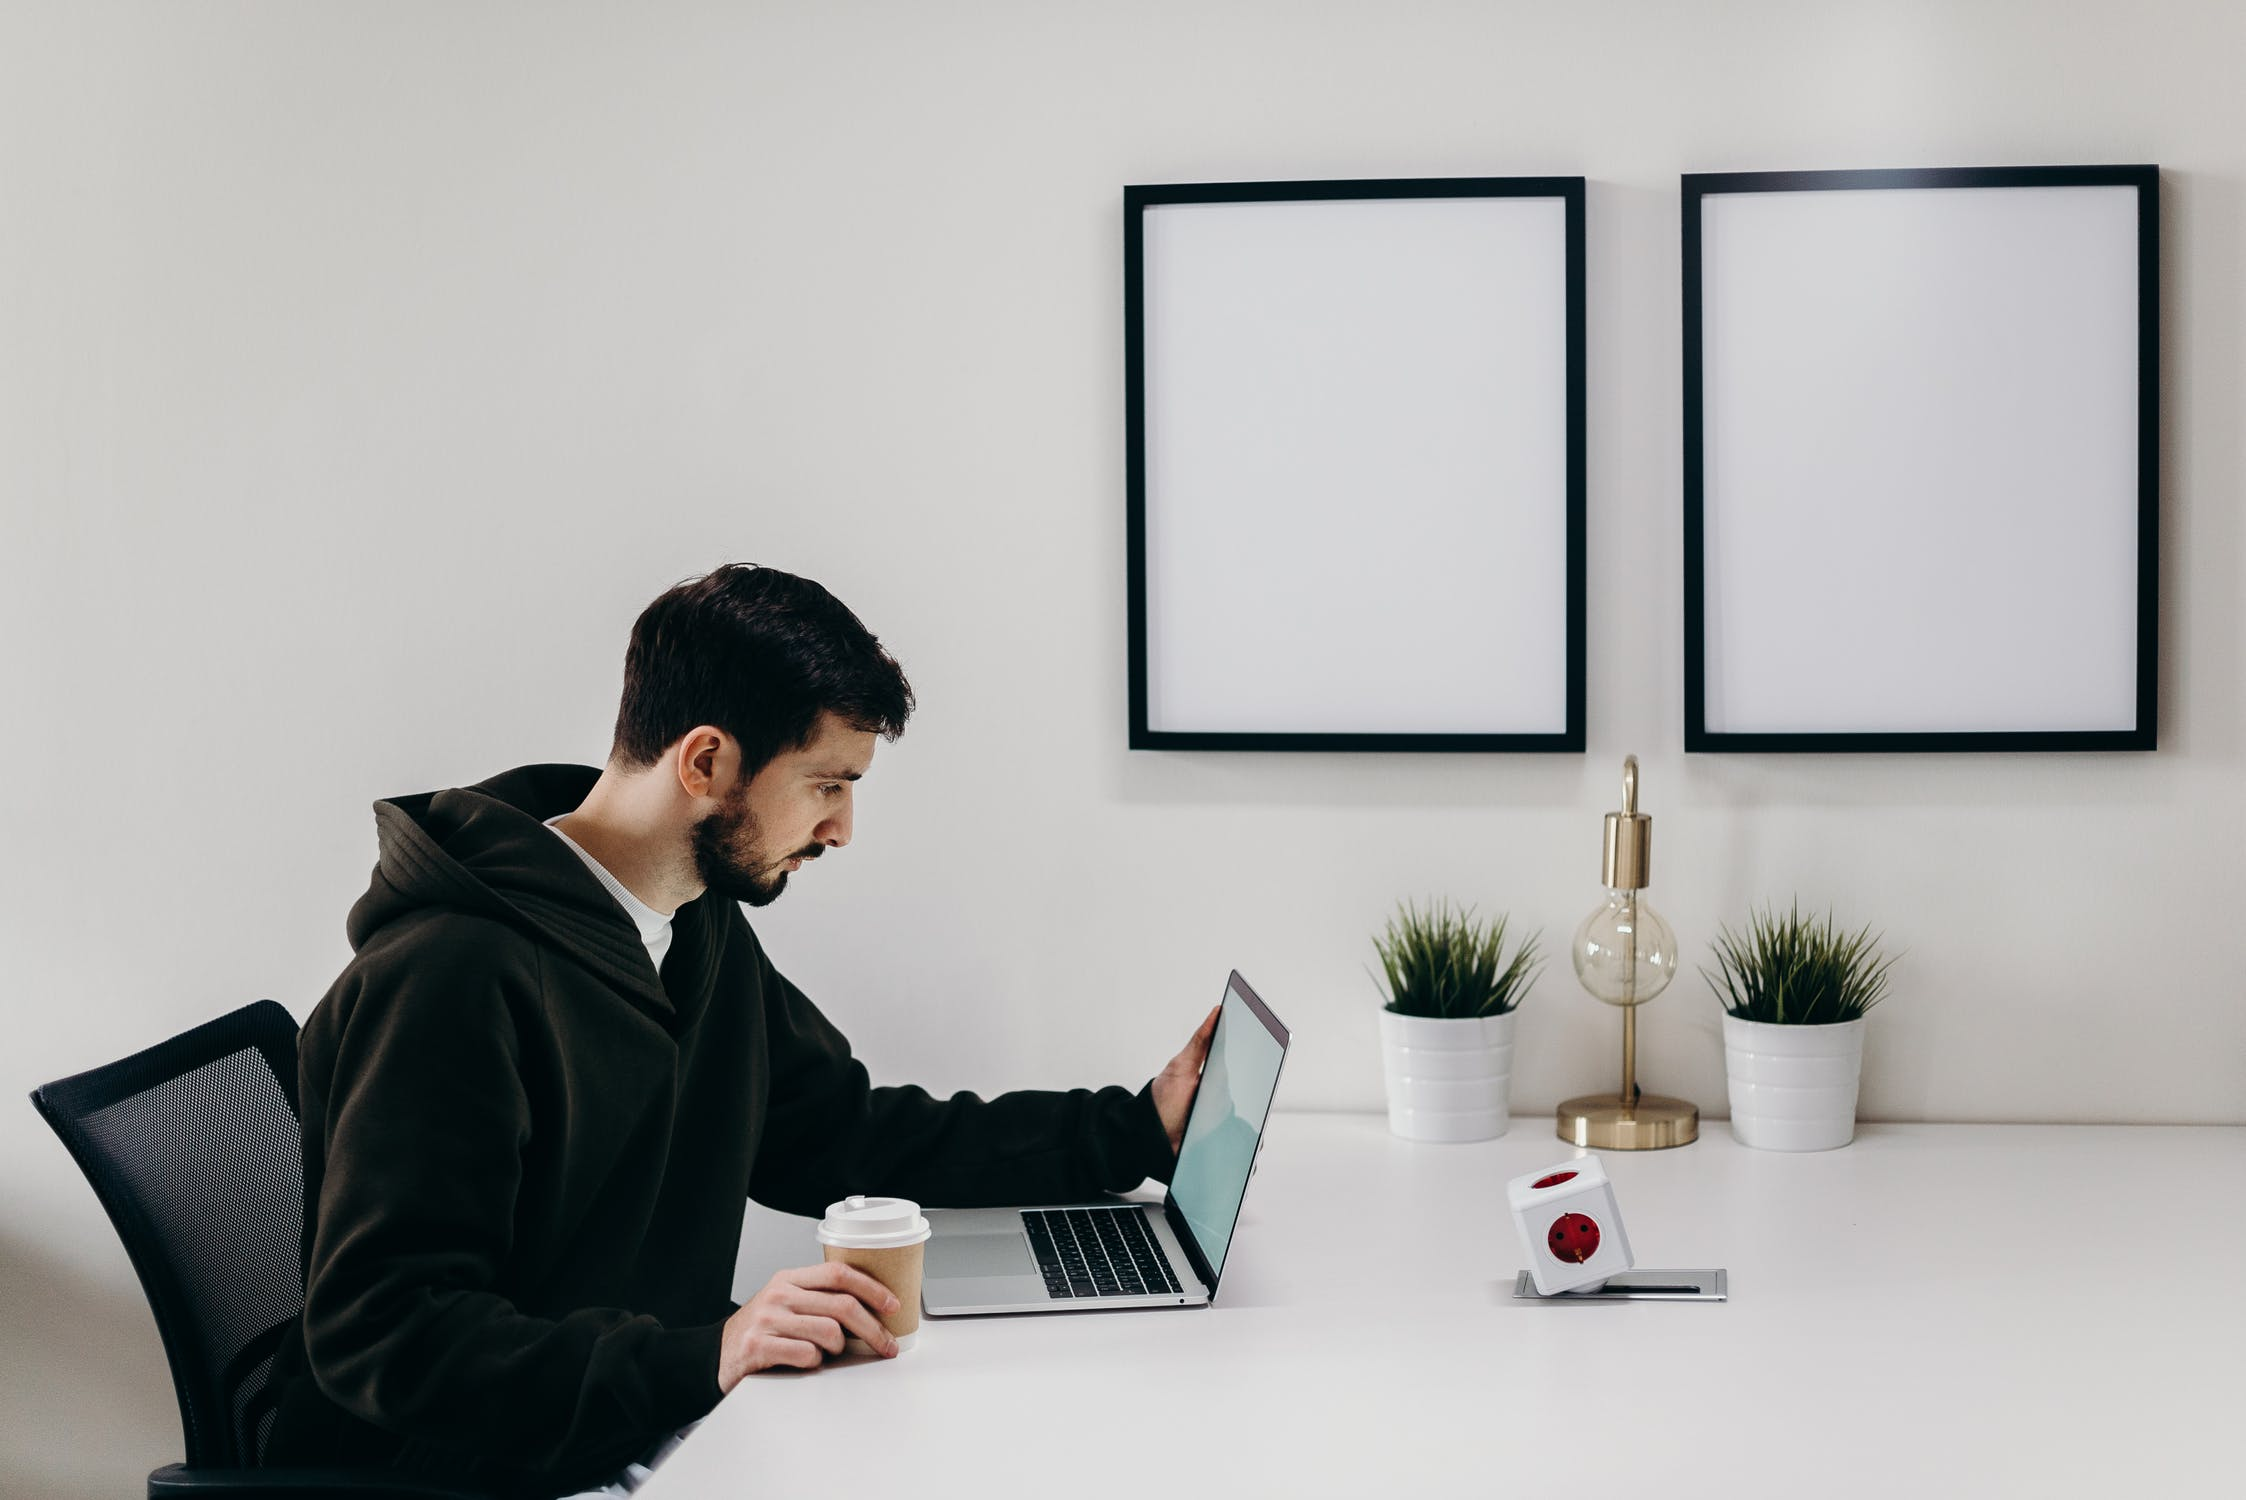 CFO roles and responsibilities done while working from home